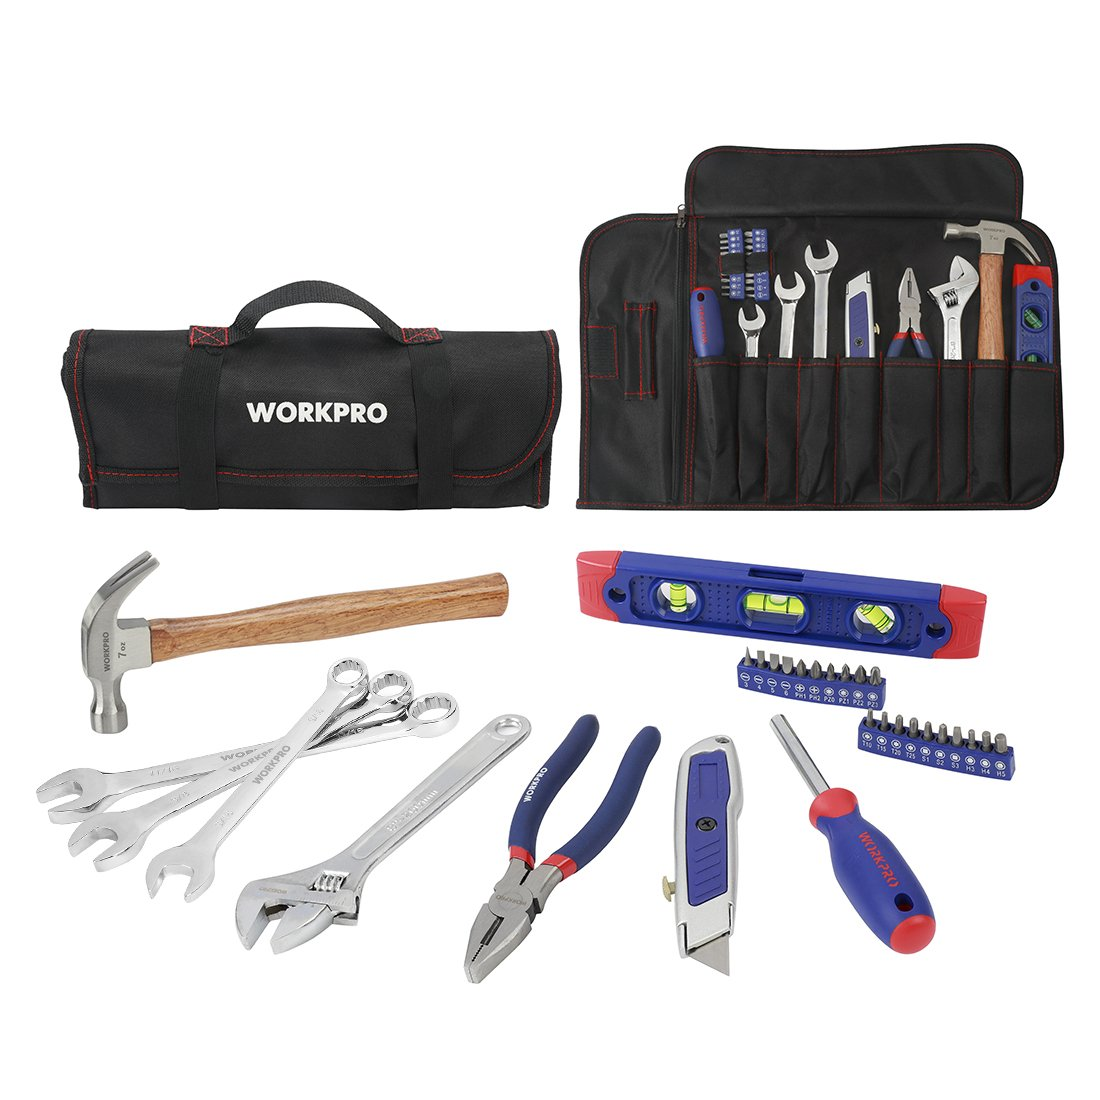 WORKPRO 29-piece Tool Set Homeowners Repair Kit with Rolling Bag